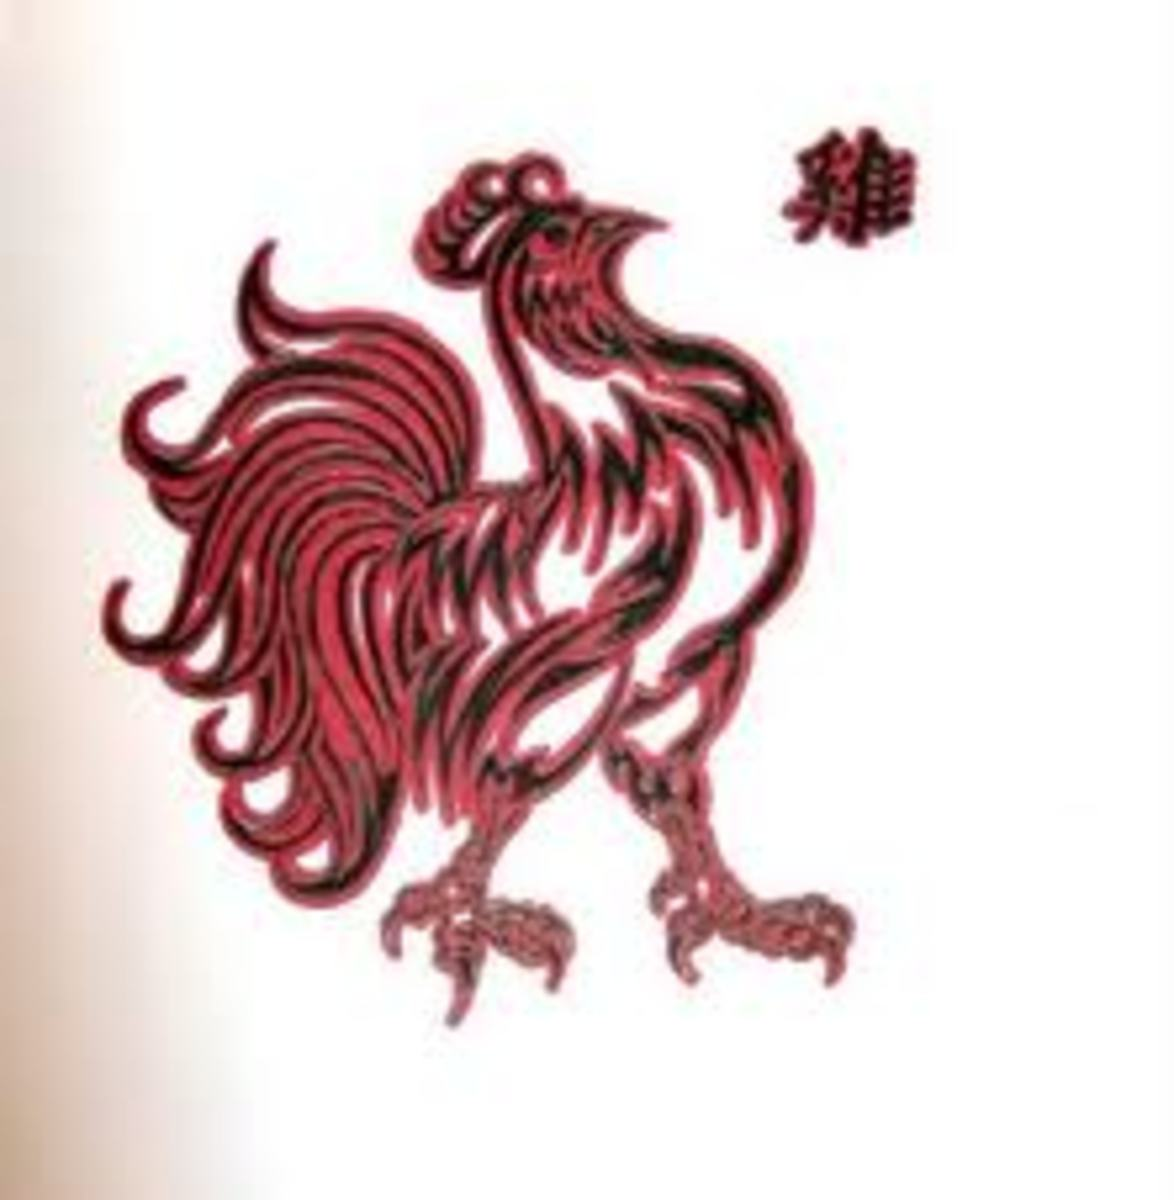 This tattoo is also from the Chinese zodiac. The sign is the rooster.